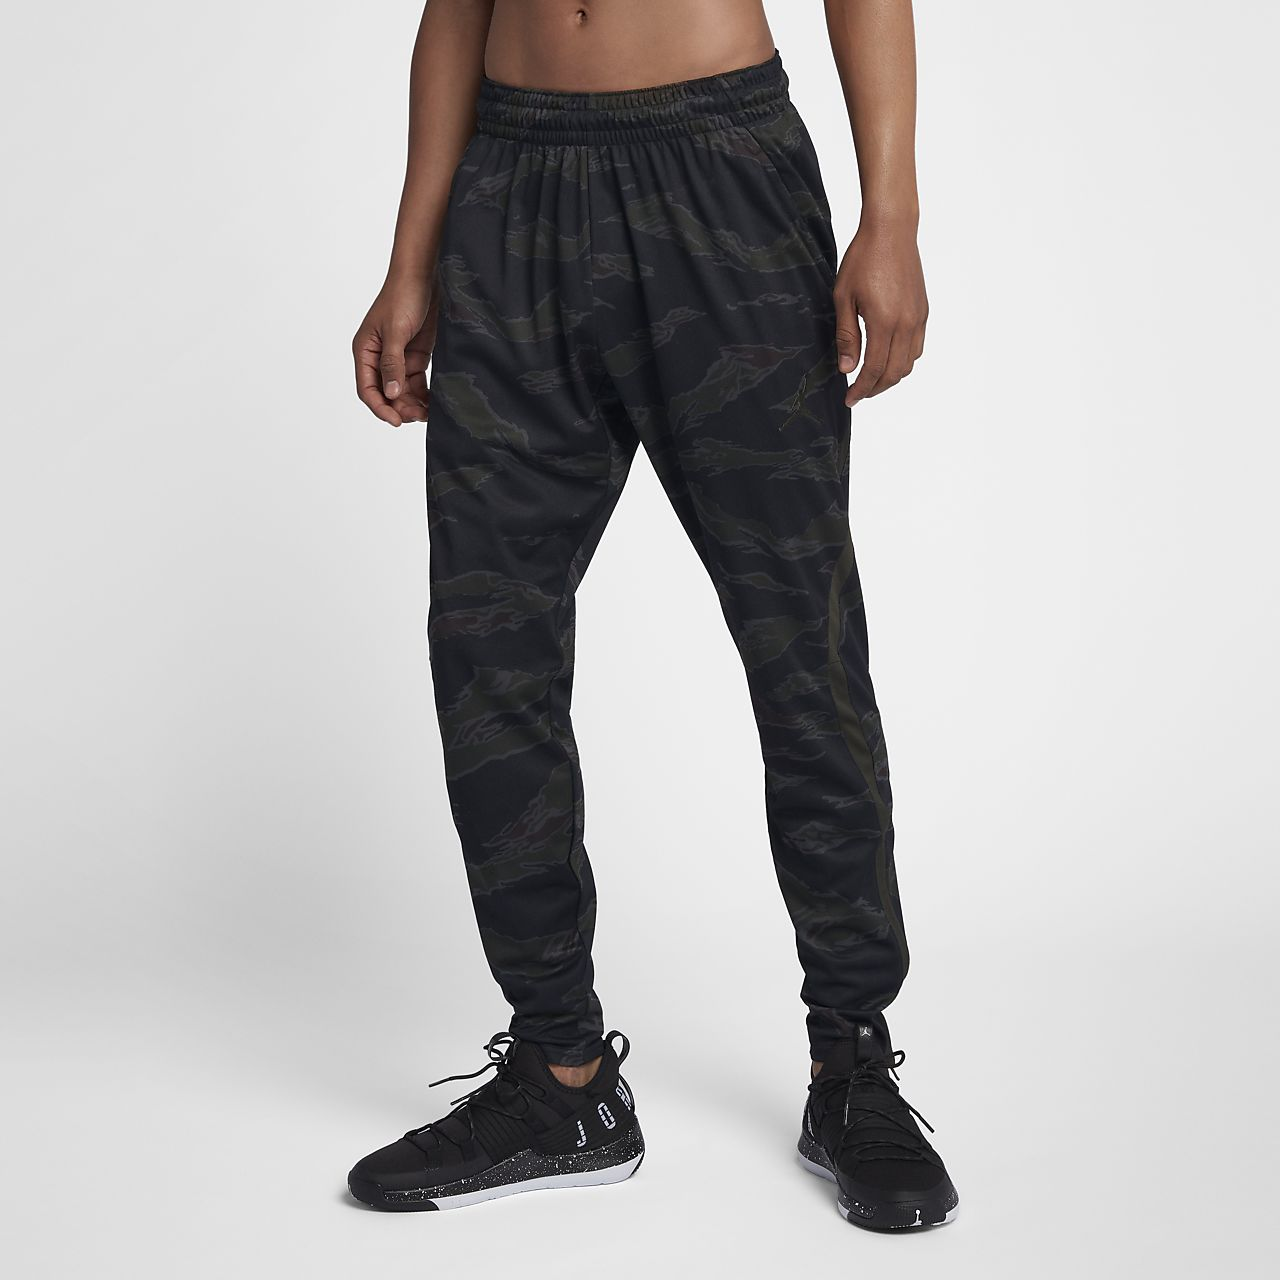 131a2912771 Jordan Dri-FIT 23 Alpha Men's Print Training Trousers. Nike.com MY